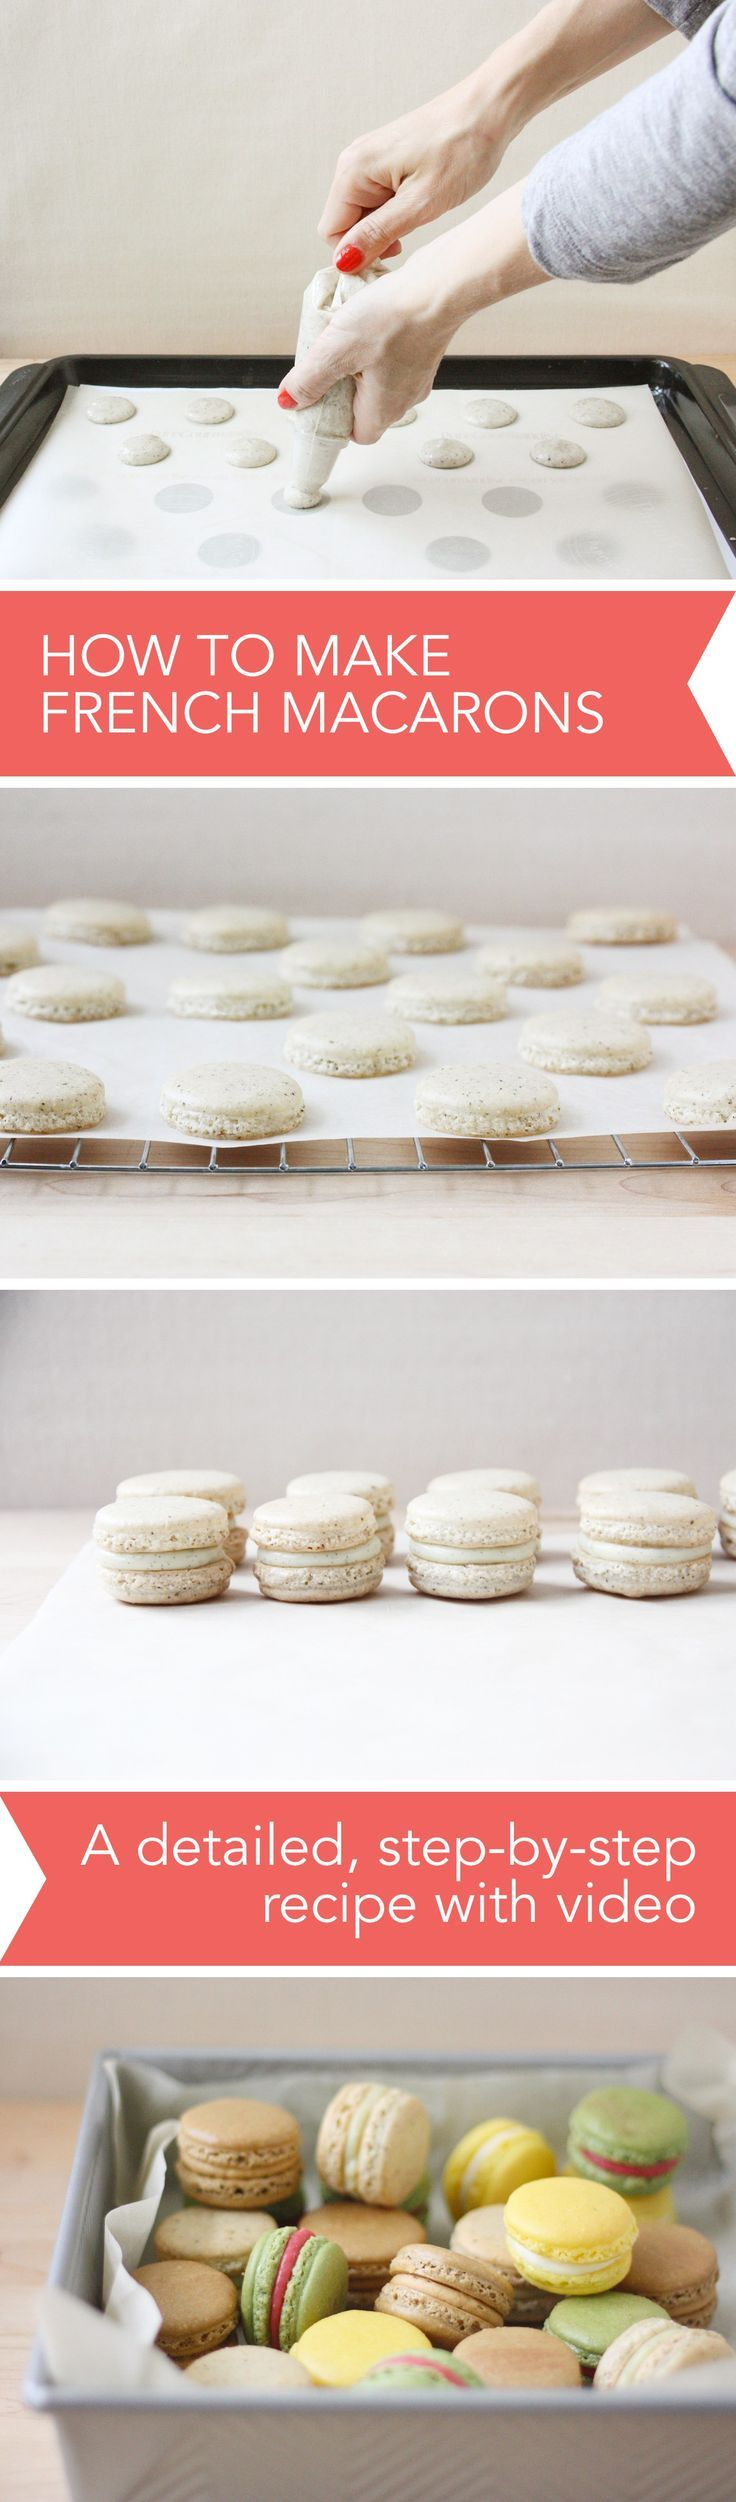 "How to Make French Macarons, a Detailed, Step-by-Step Recipe with Video // <a href=""http://FoodNouveau.com"" rel=""nofollow"" target=""_blank"">FoodNouveau.com</a>"